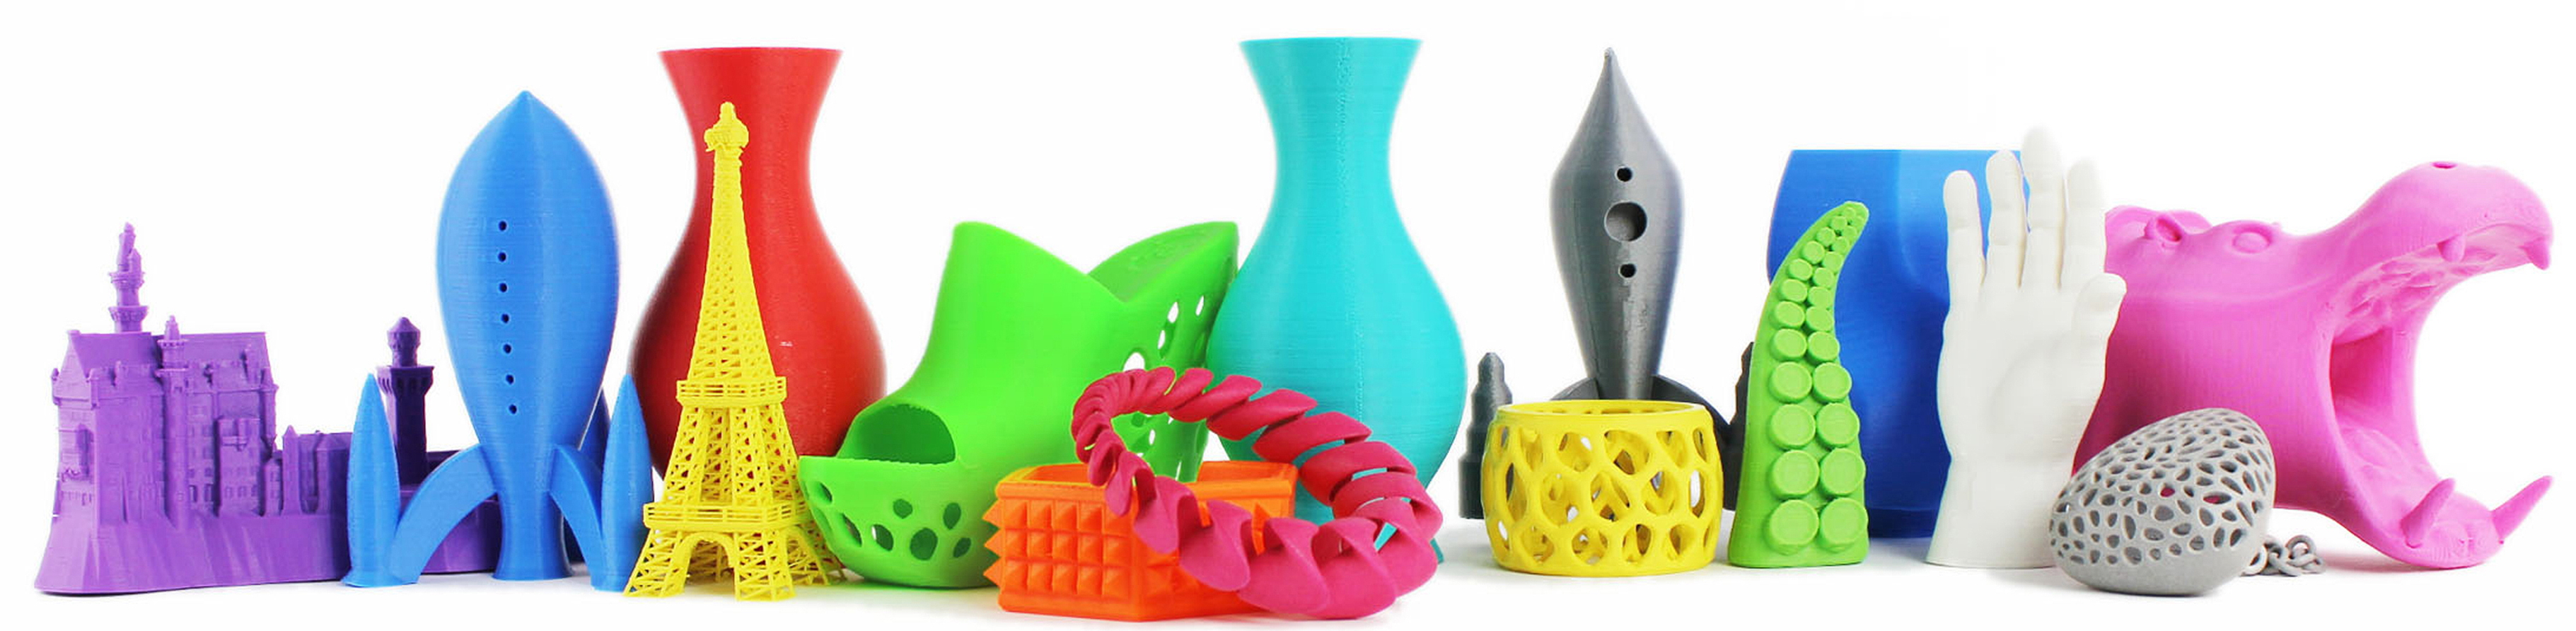 cube_printed_objects_-_lead_image